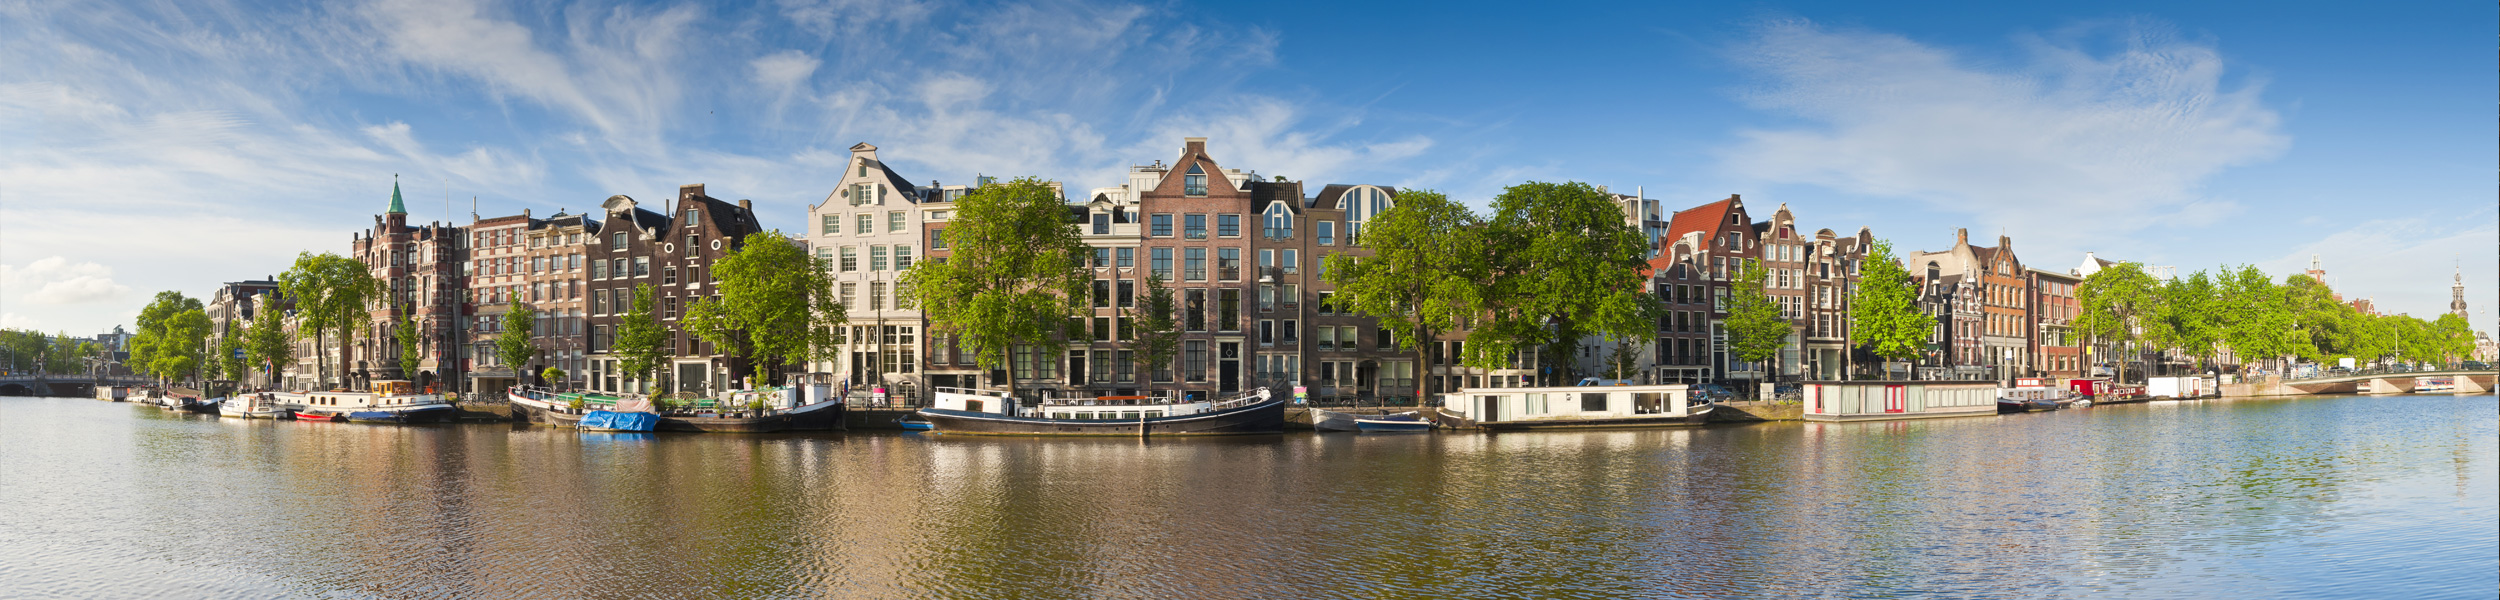 Senior QA Engineer Amsterdam, the Netherlands